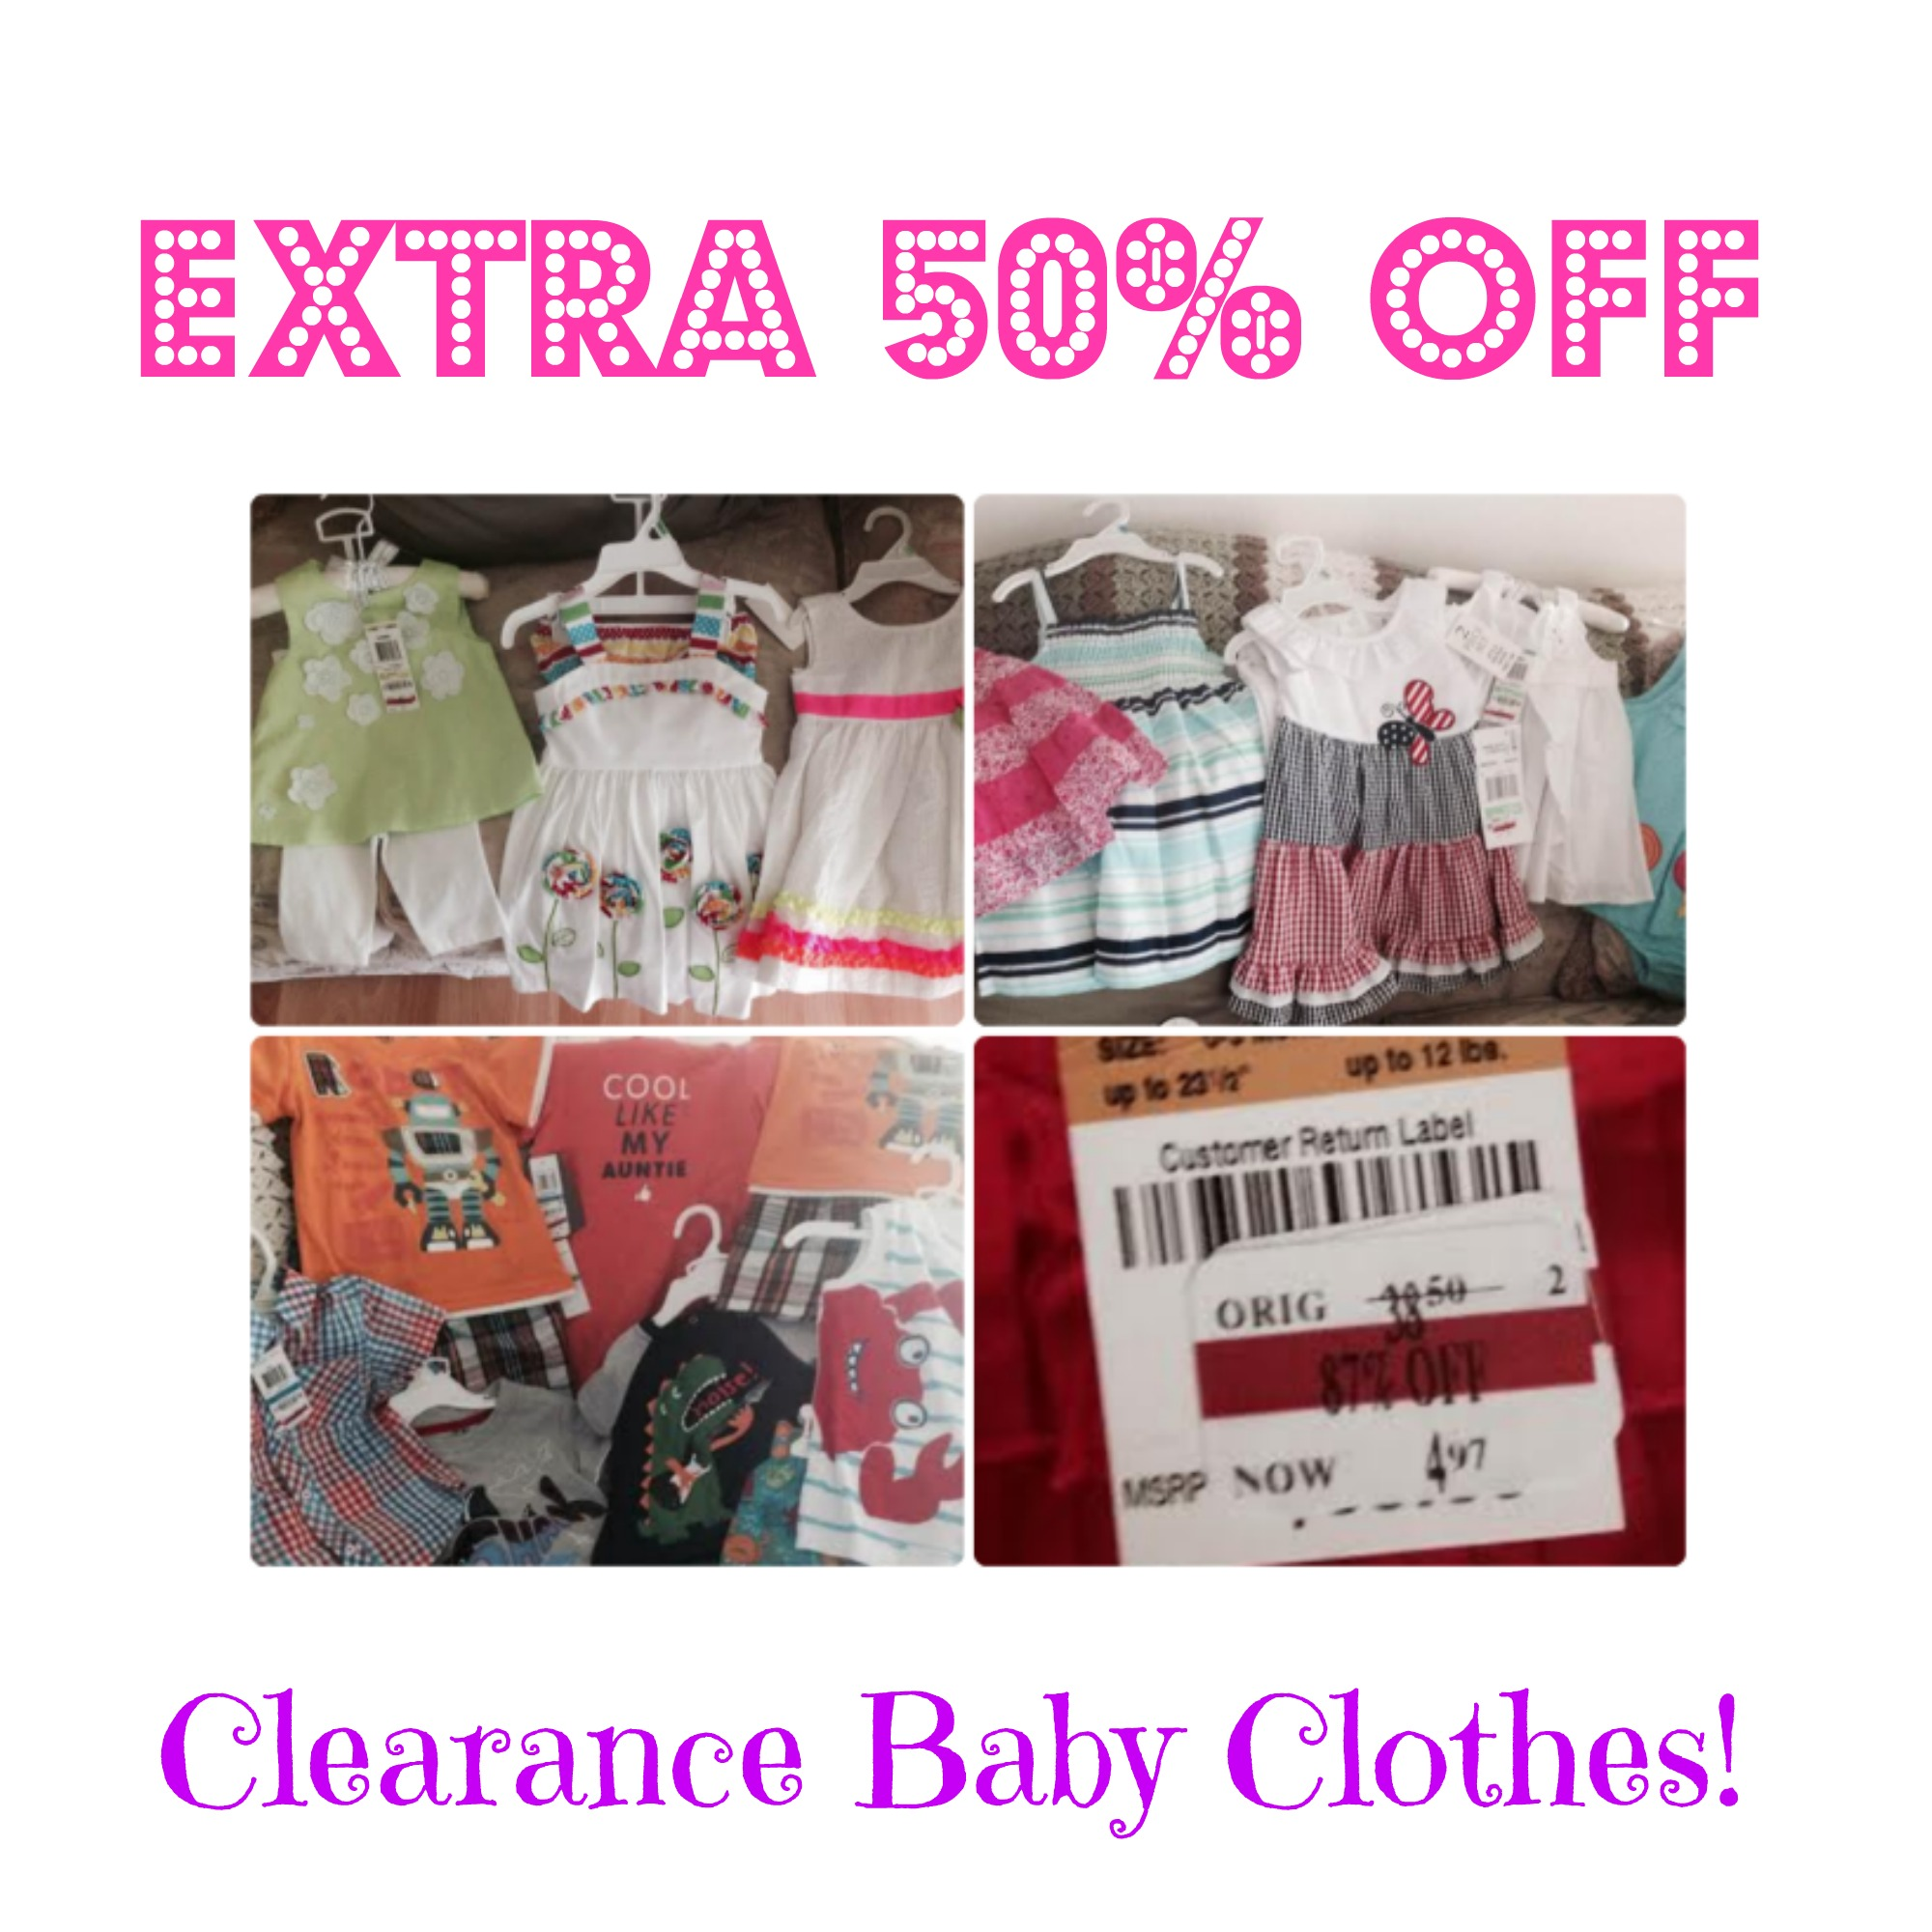 27ad911a8868 HOT! Extra 50% Off Clearance Baby Clothing at Macy s!